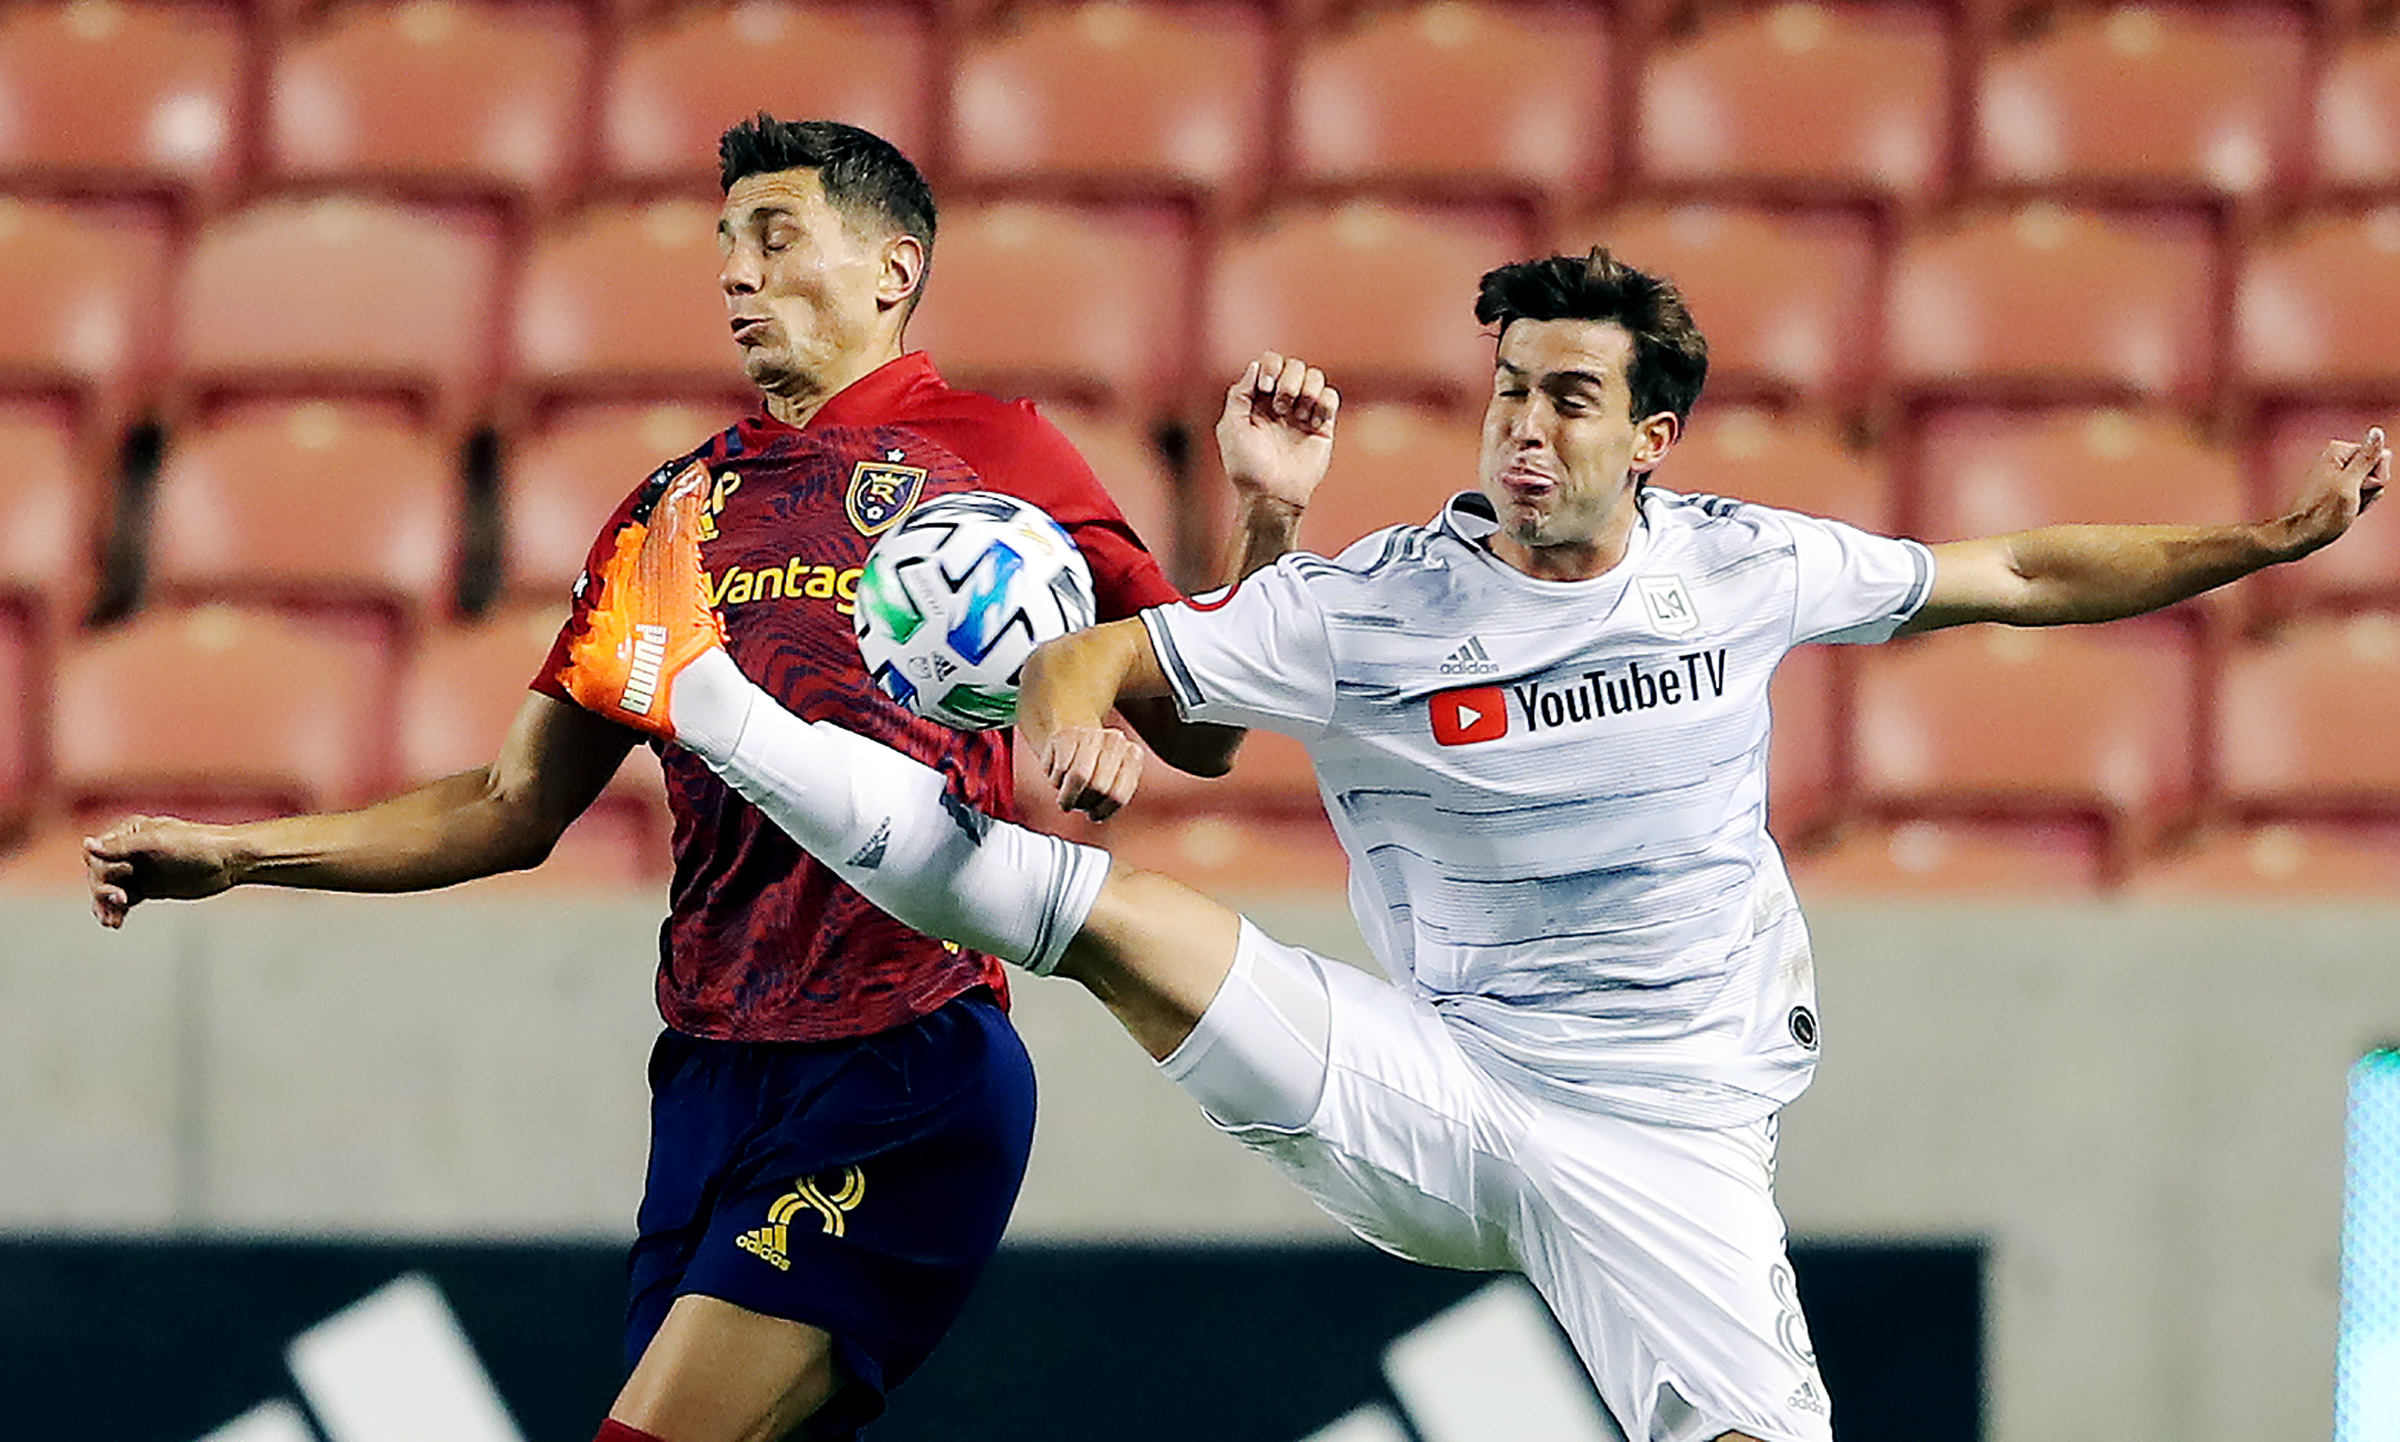 Real Salt Lake midfielder Damir Kreilach (8) and Los Angeles FC midfielder Francisco Ginella (8) battle for the ball as Real Salt Lake and Los Angeles FC play an MLS game at Rio Tinto Stadium in Sandy on Wednesday, Sept. 9, 2020.